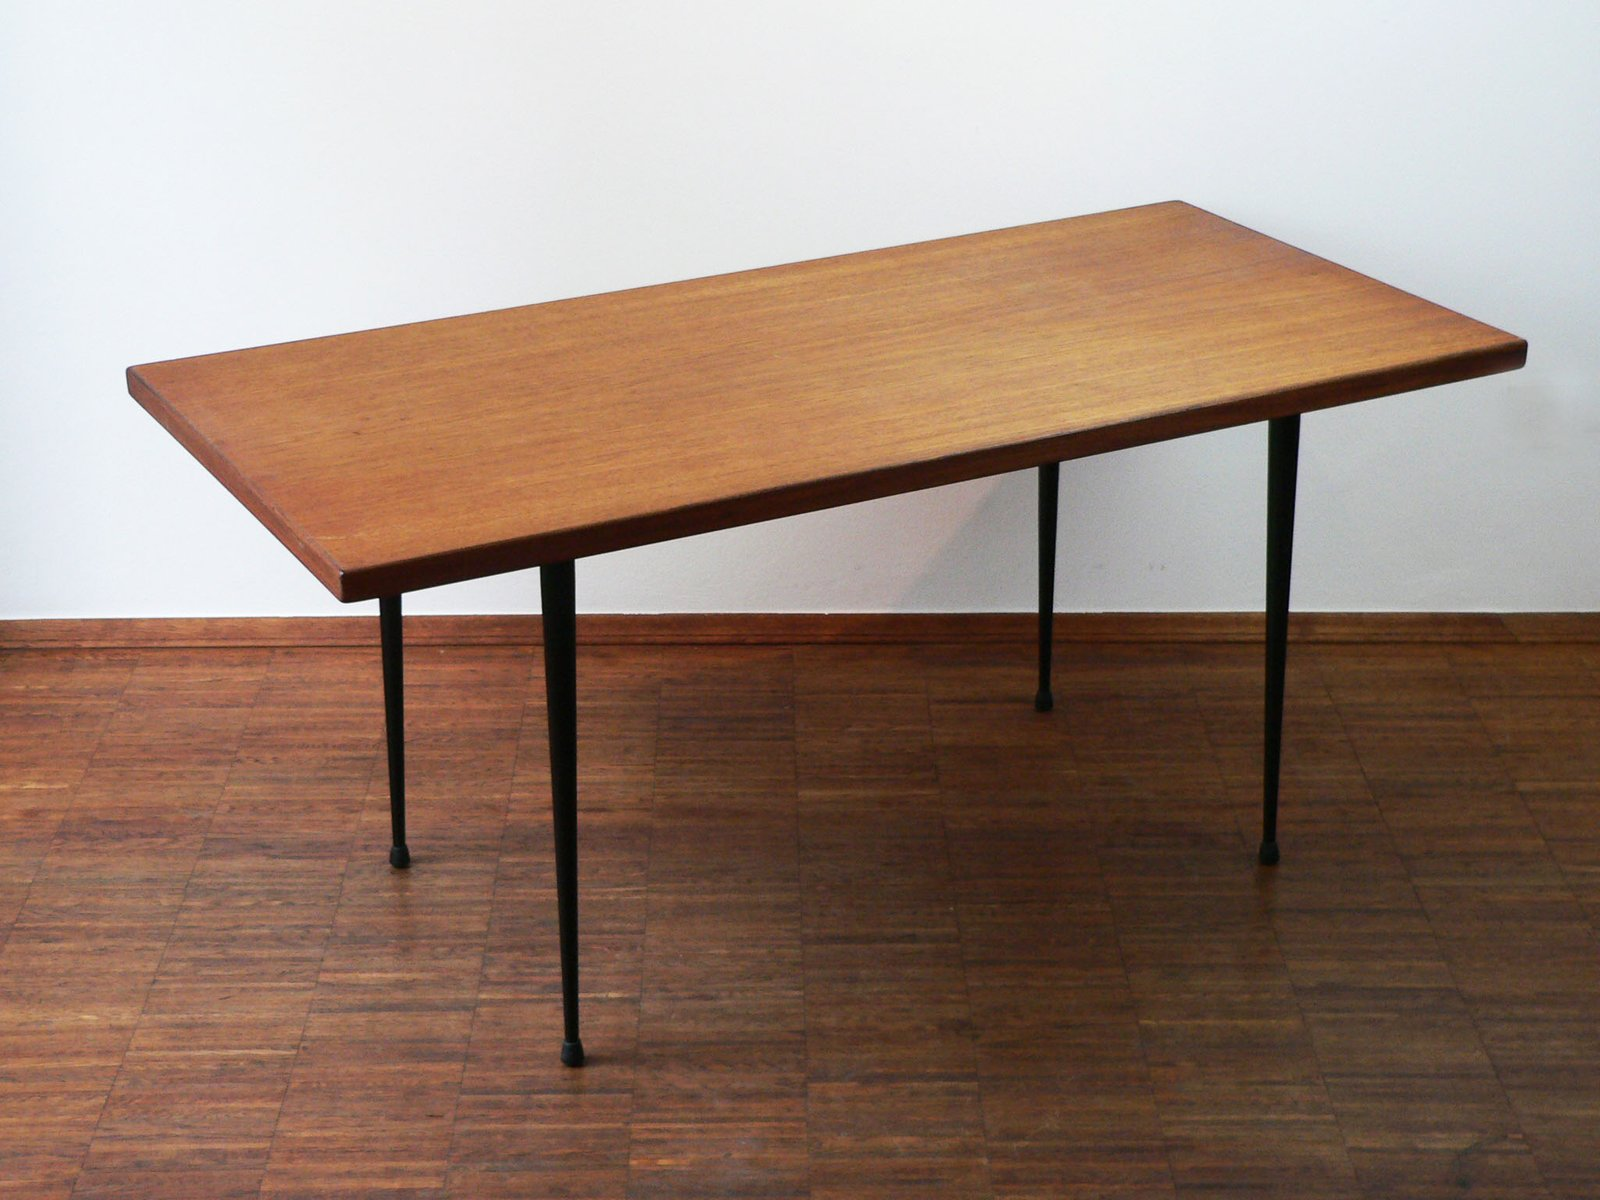 century made table coffee modern chiconecabinetmakers hand mid chicone custom crafted by